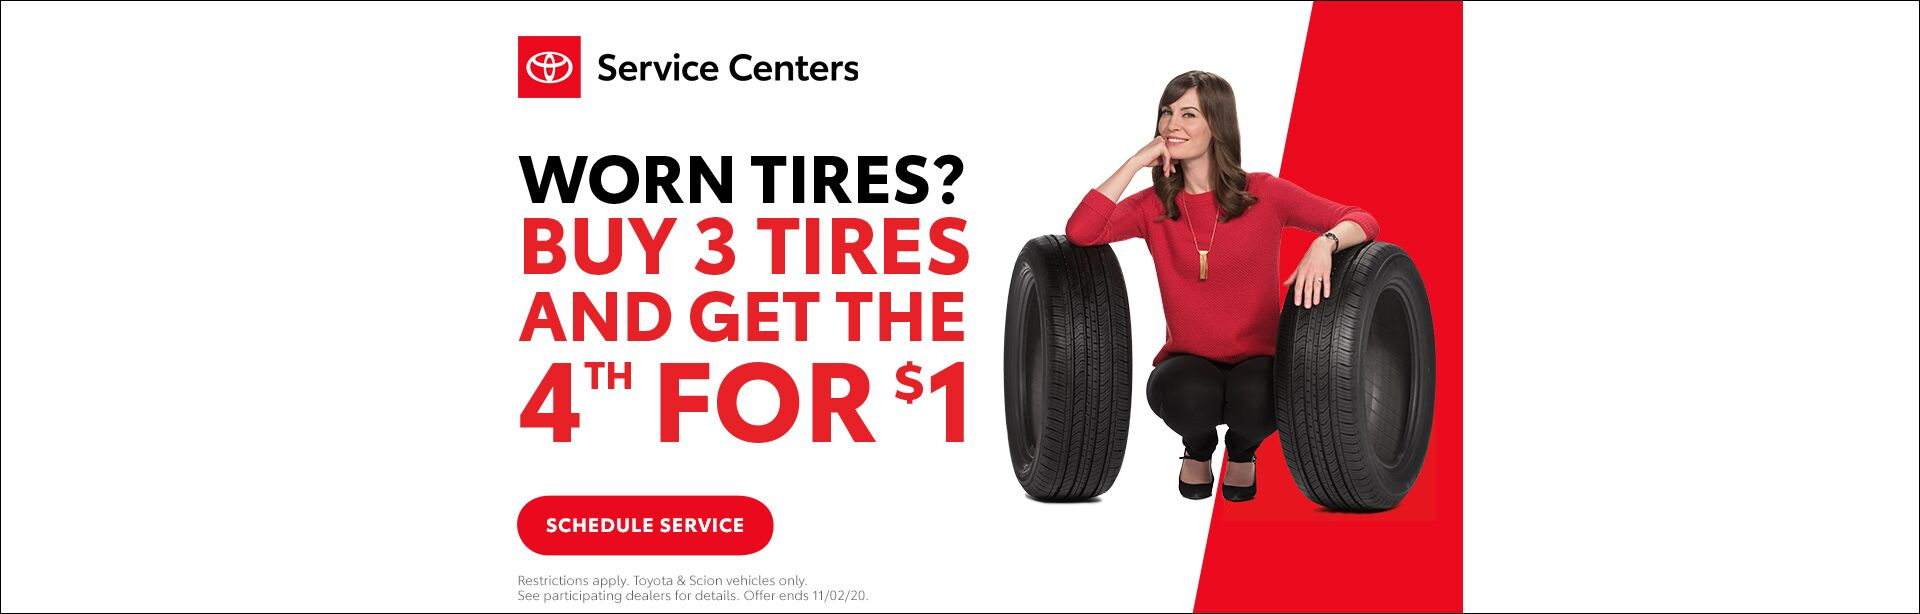 Burnsville Toyota Buy 3 Tires and Get the 4th for $1